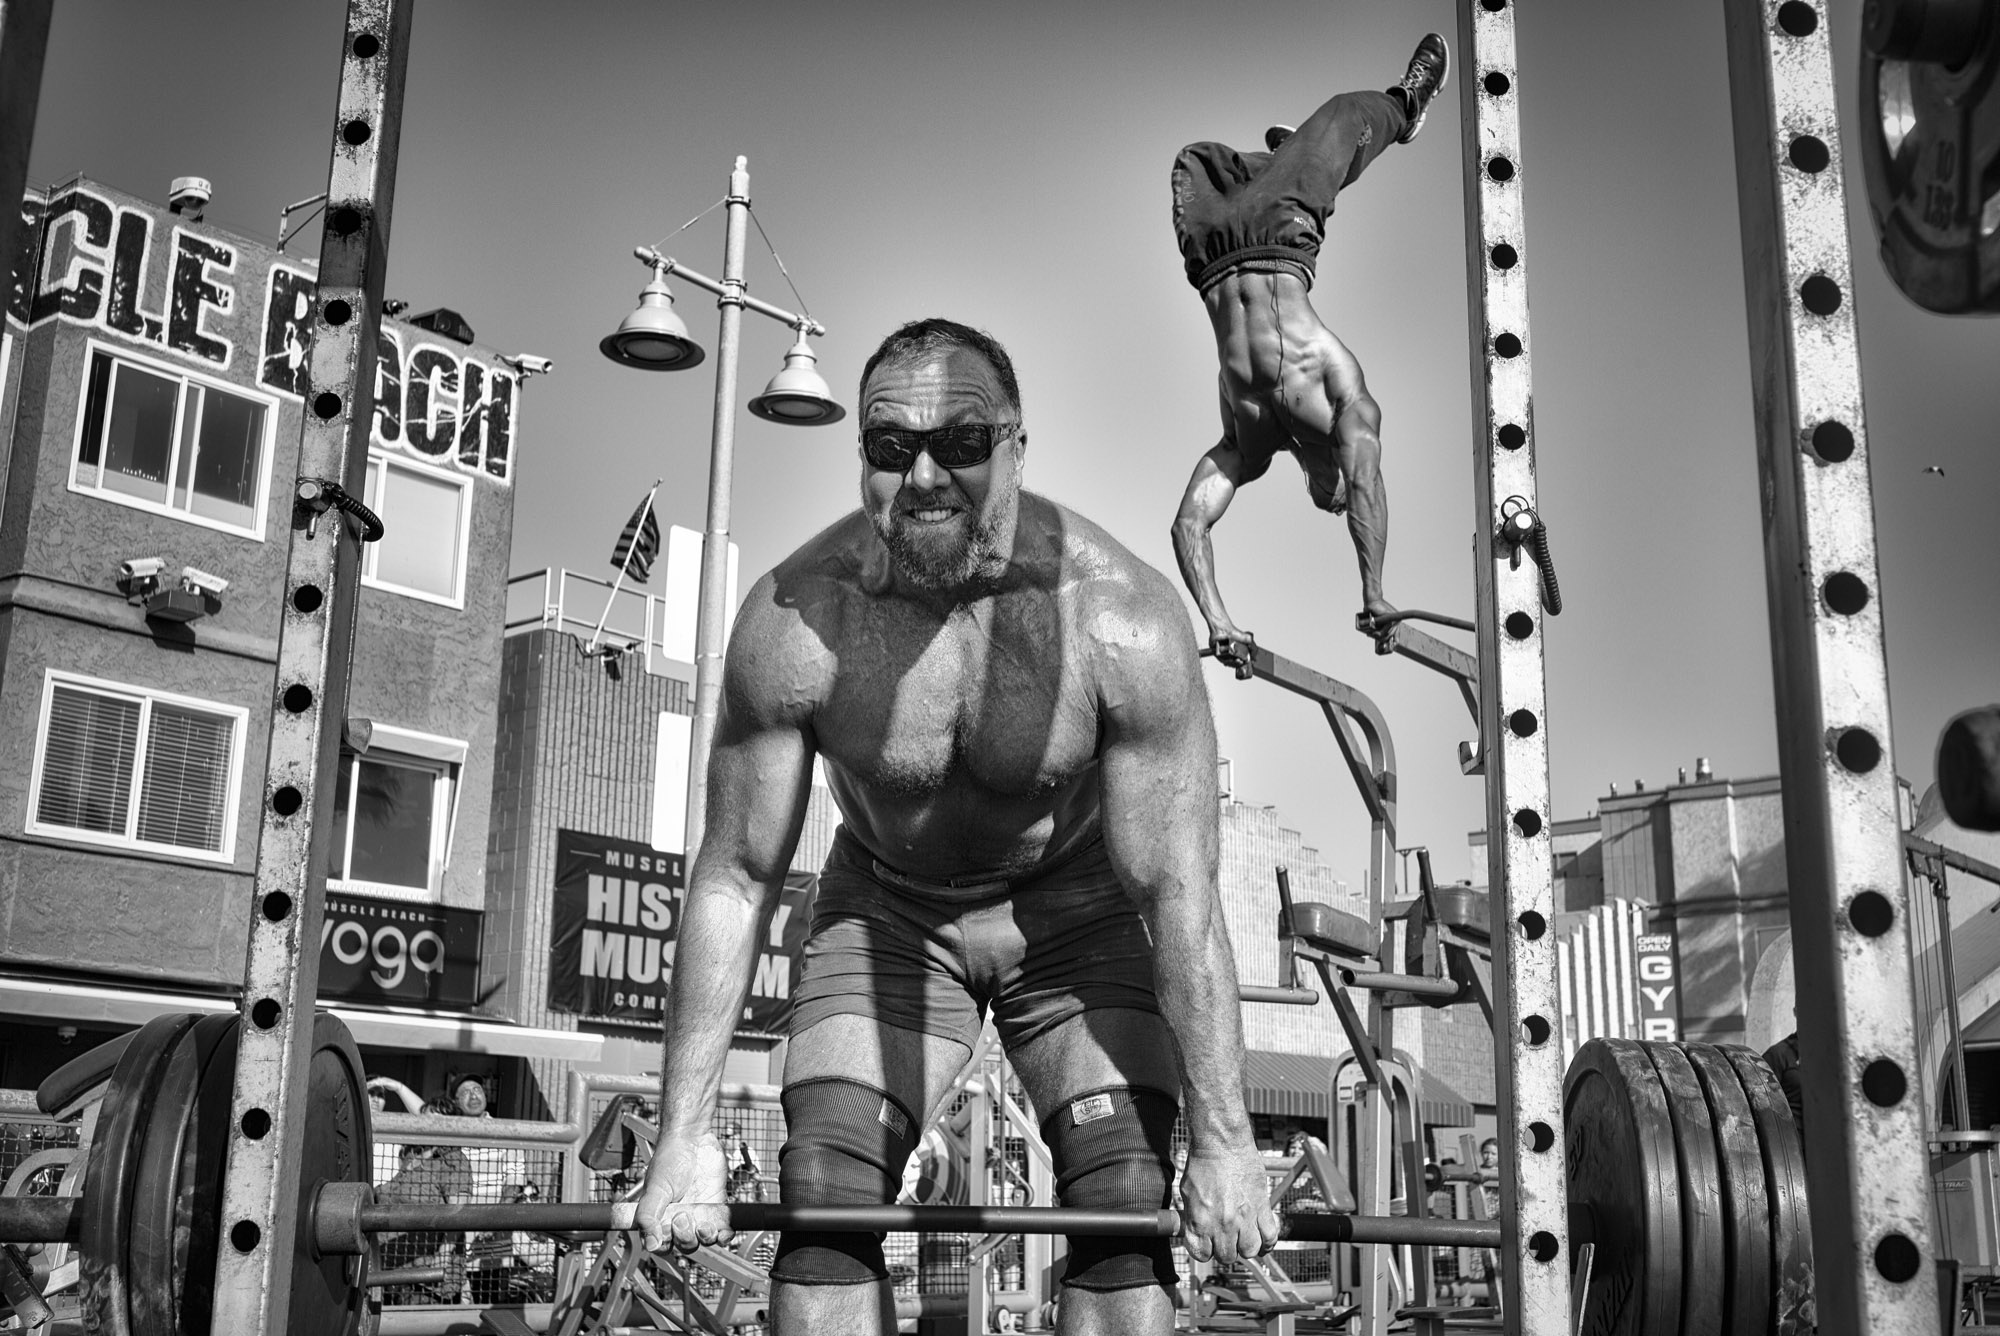 A weightlifter raises a barbell loaded with heavy plates while Ike Catcher performs an aerial handstand at the world-famous Muscle Beach Gym. © Dotan Saguy